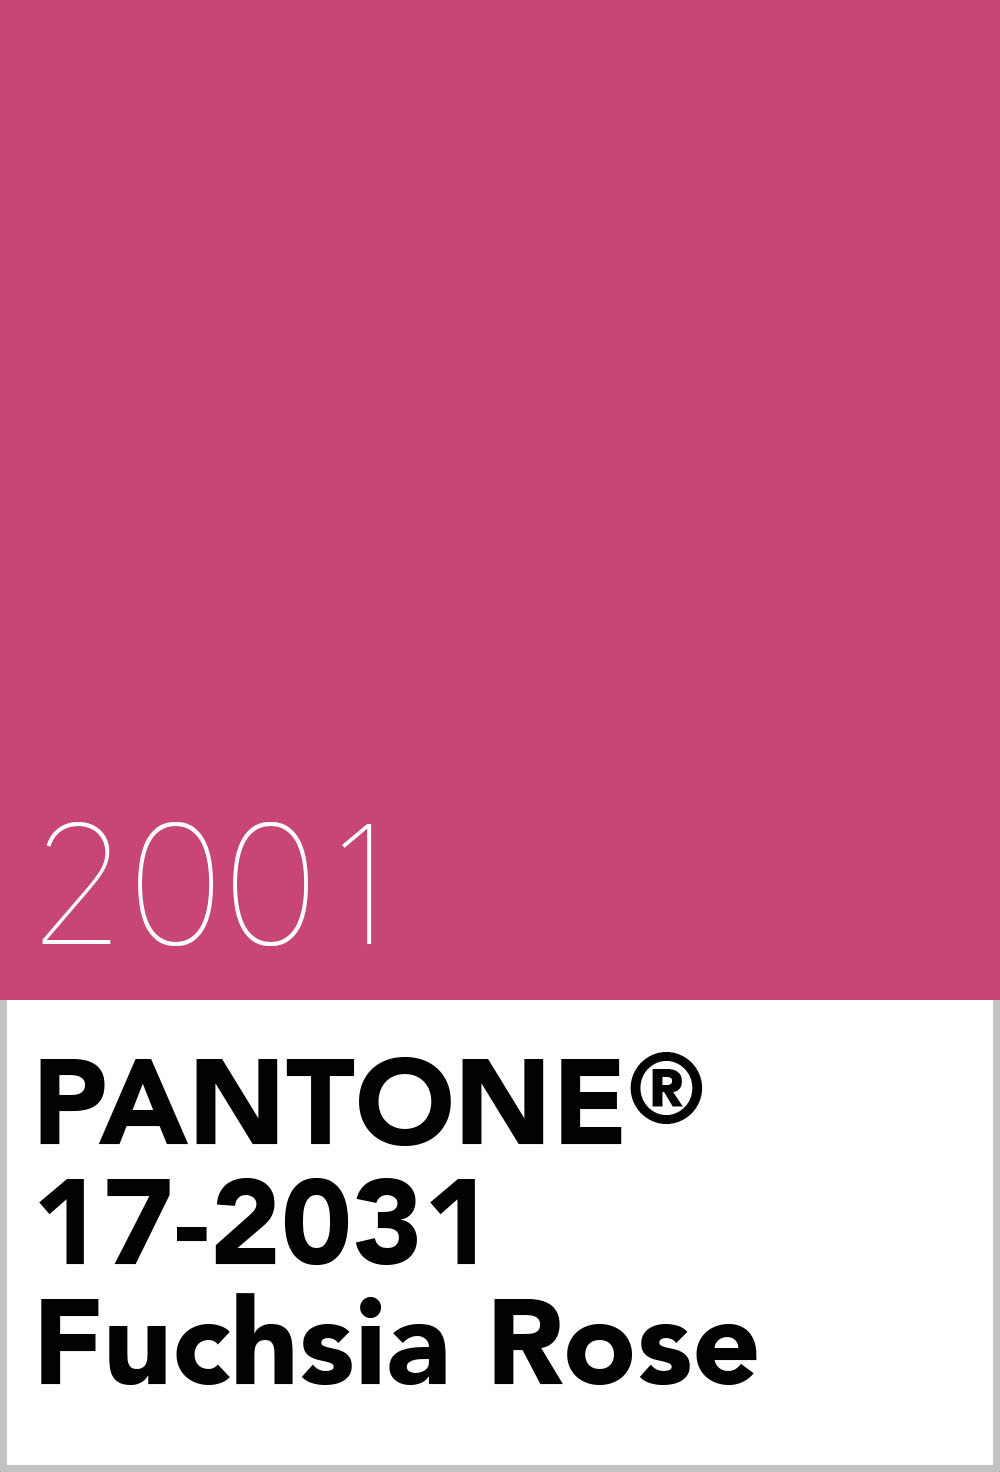 Pantone Colour Of The Year 2001